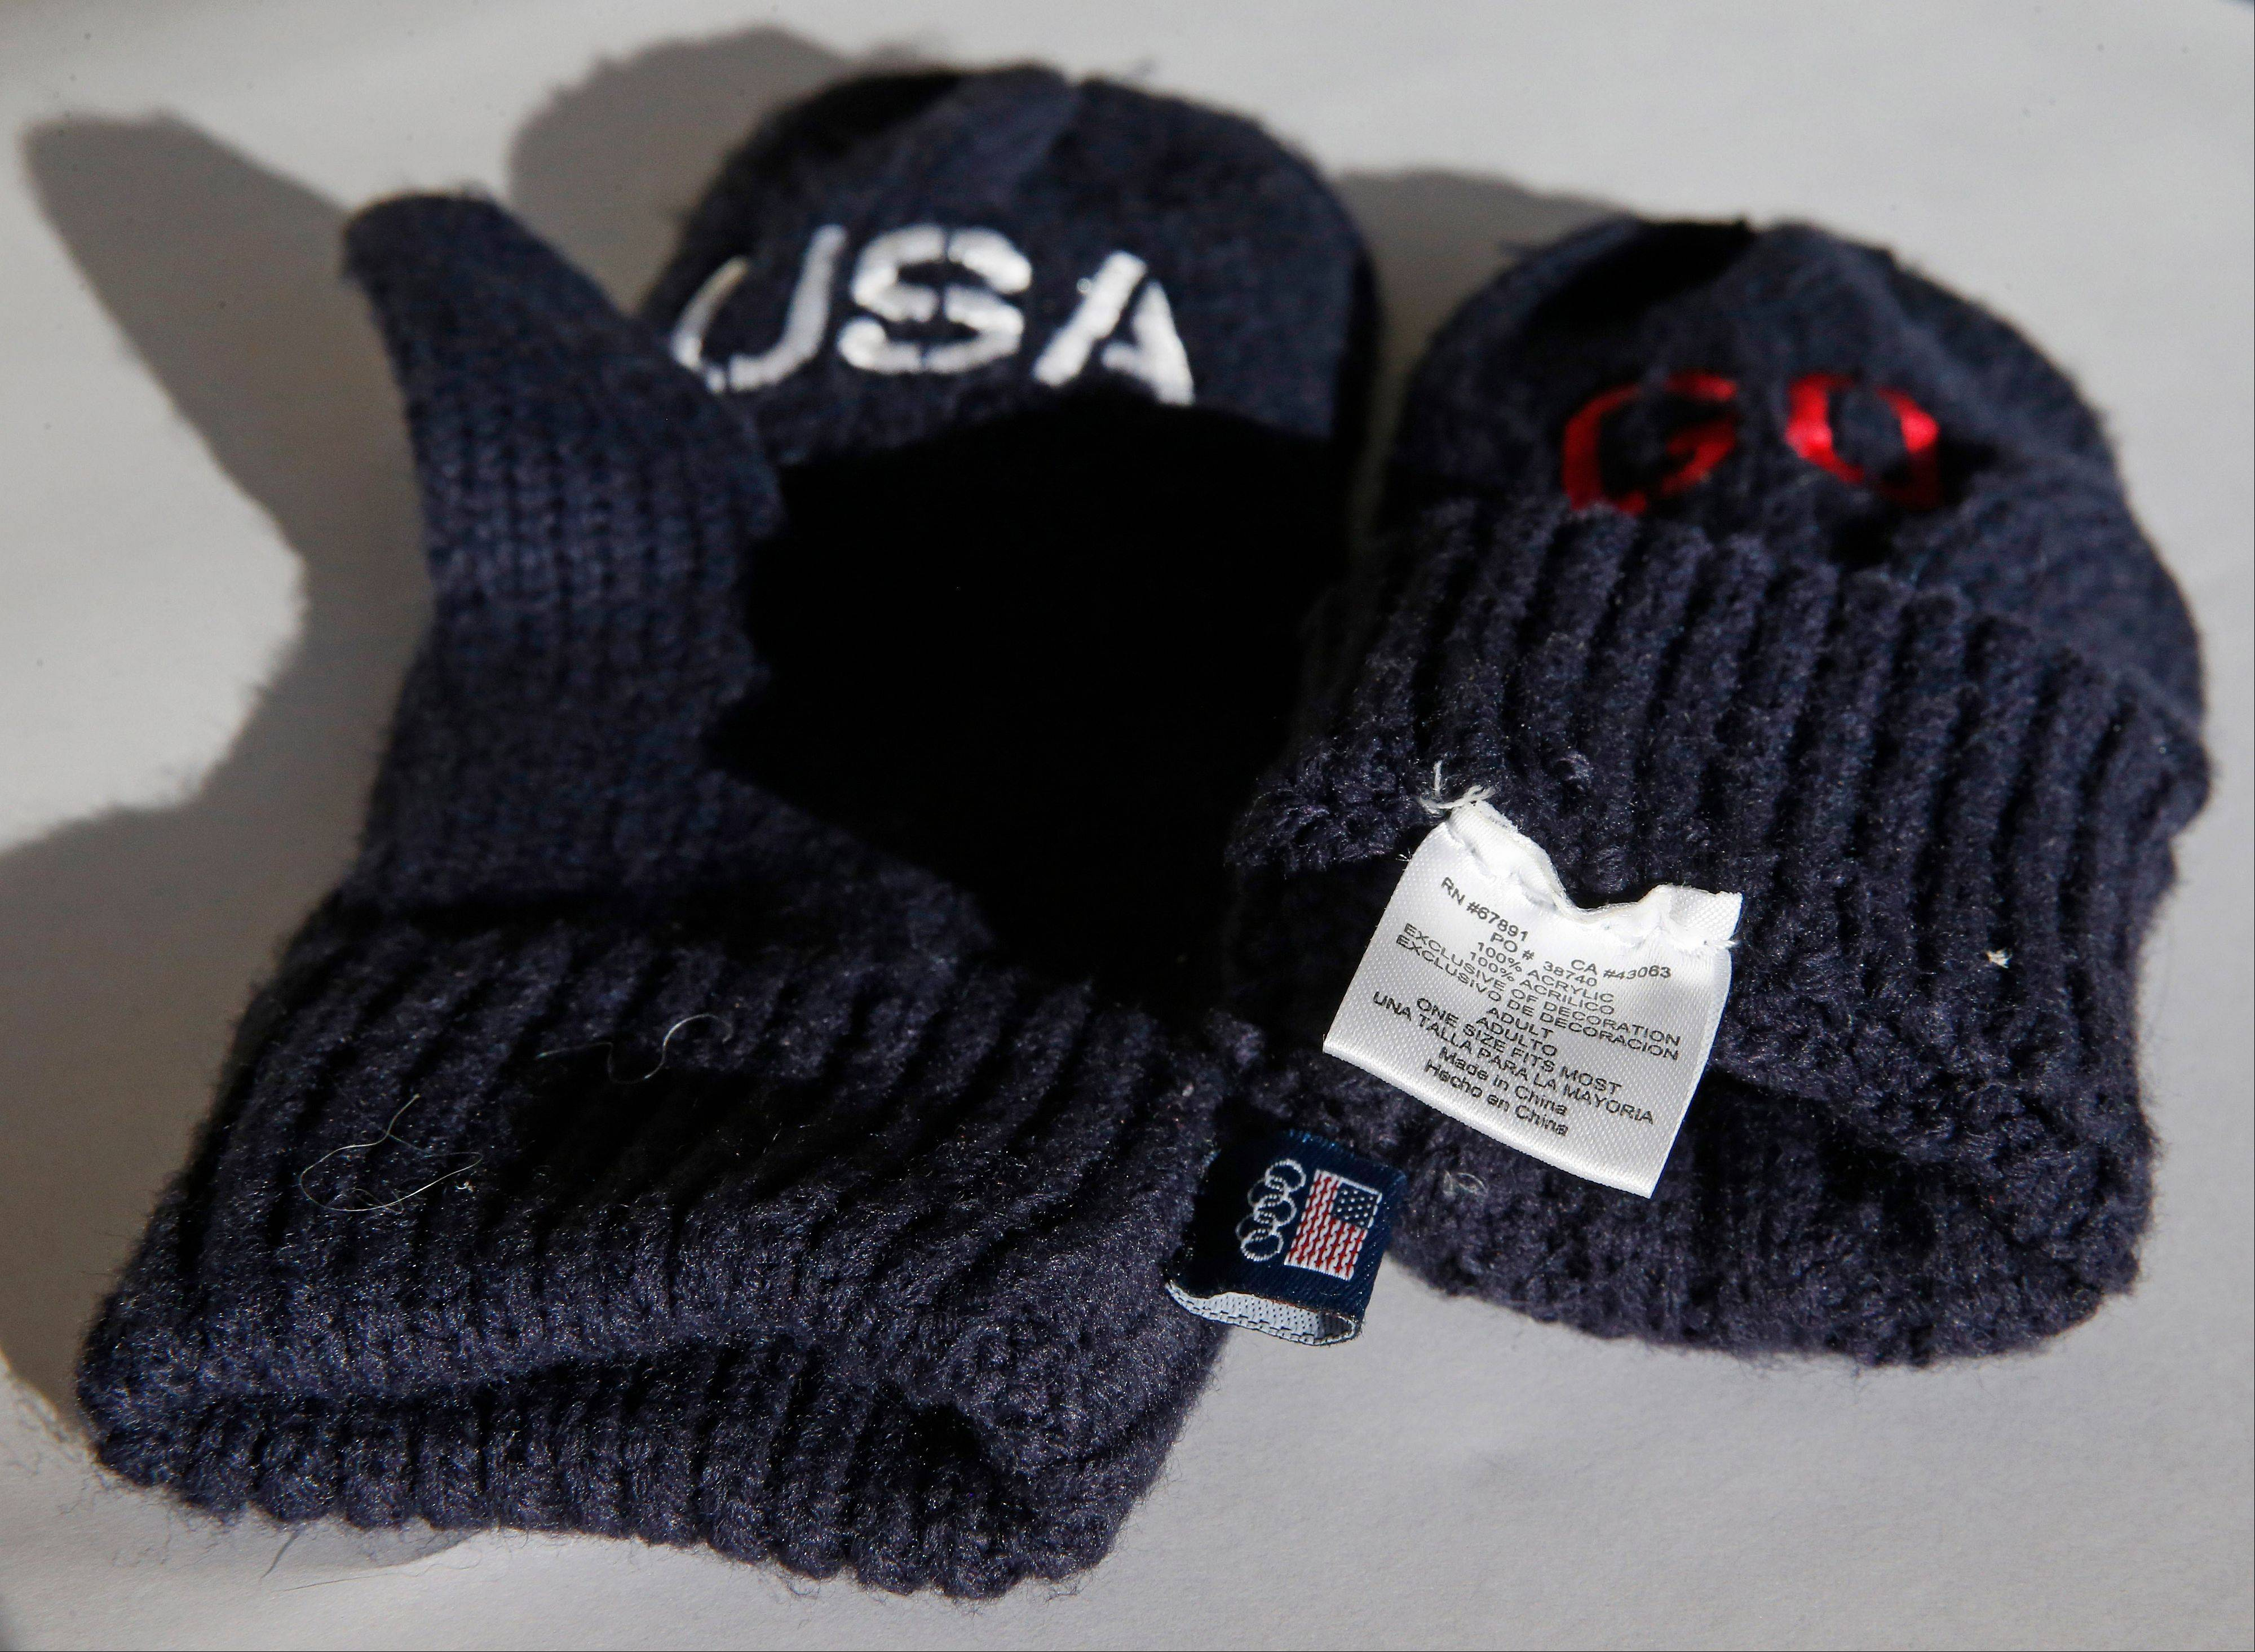 The U.S. Olympic Committee is charging $14 a pair for the blue gloves that have the word �Go� embroidered in red on one mitten and �USA� on the other. The pair is also labeled with a tag on the inside which says the gloves are �Made in China.�